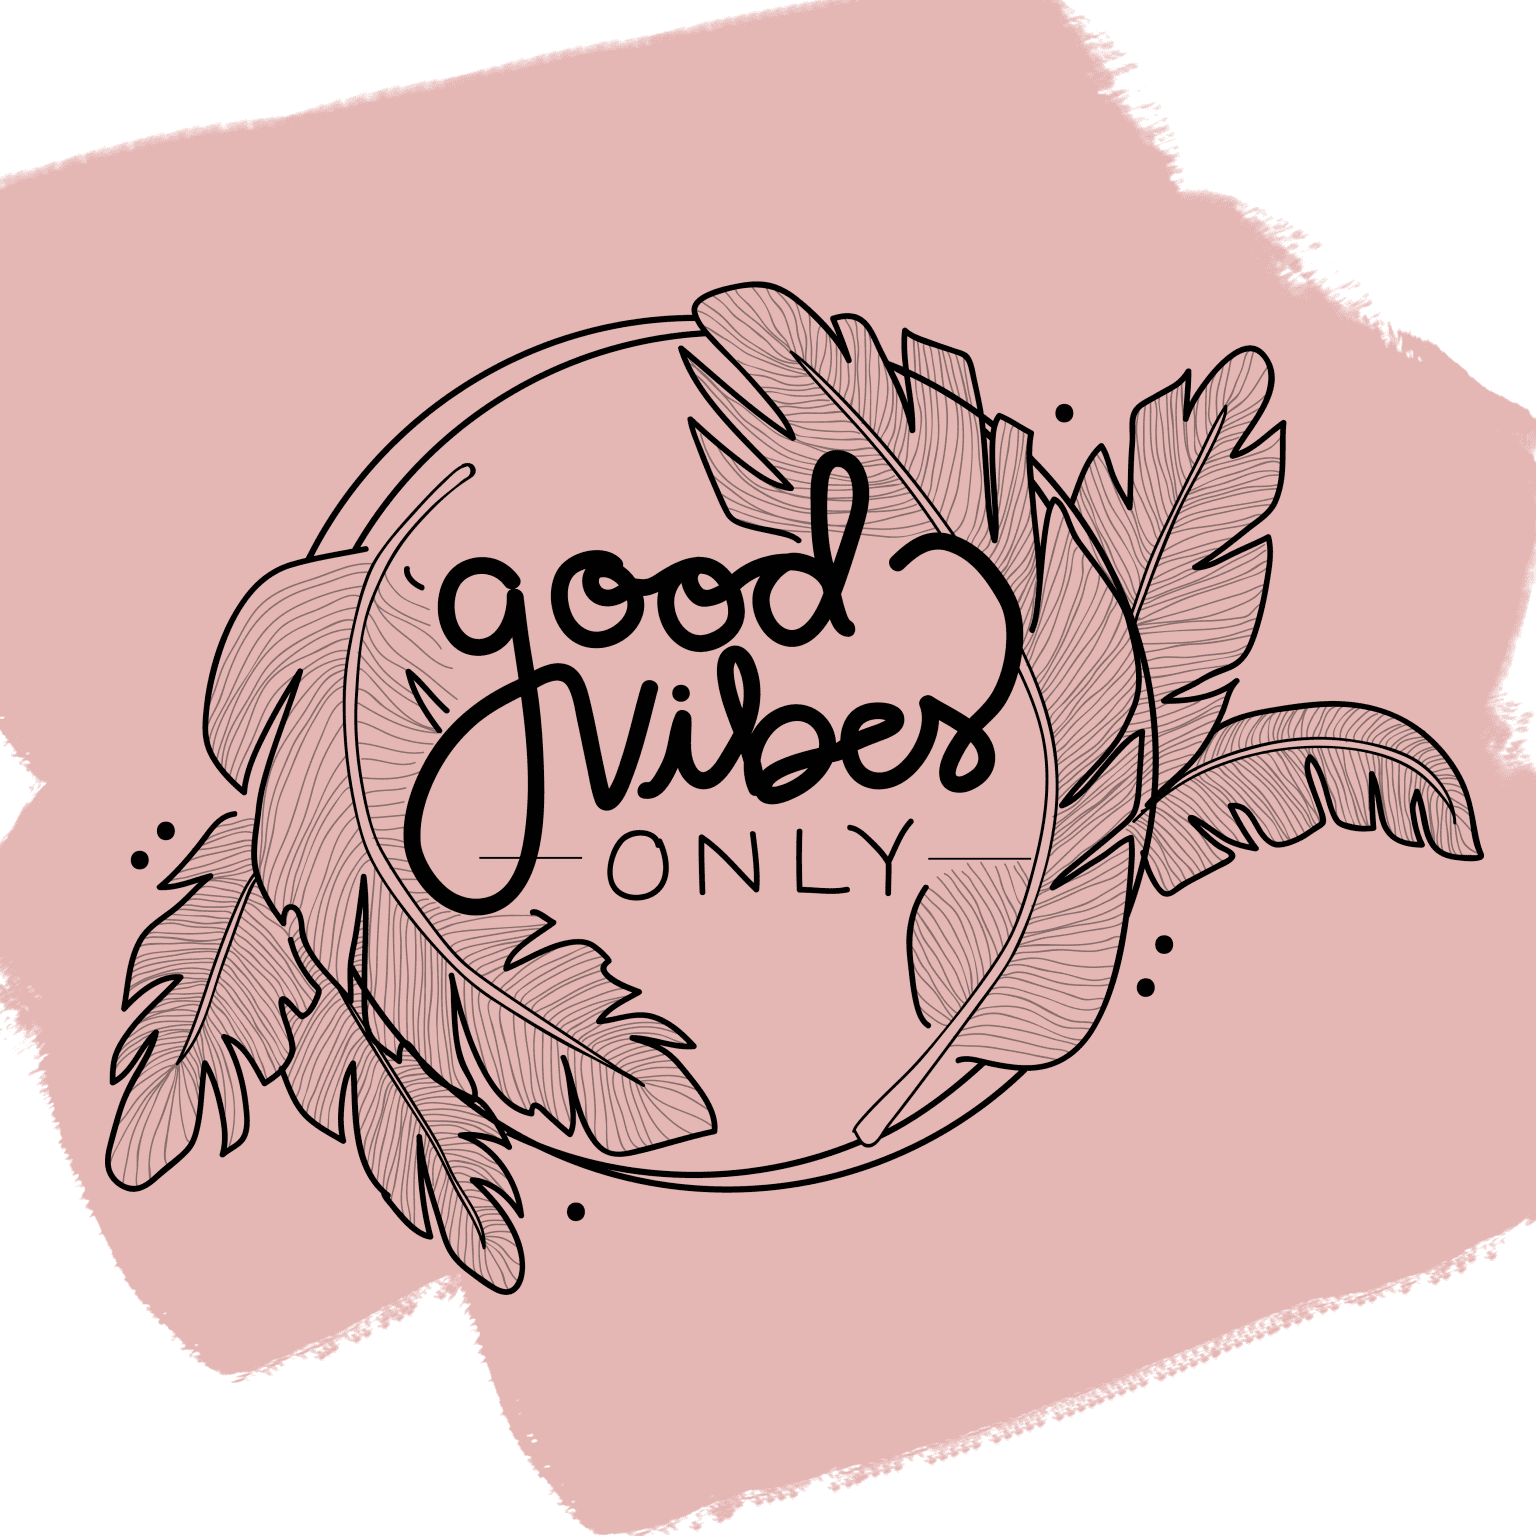 Good Vibes Only Illustration